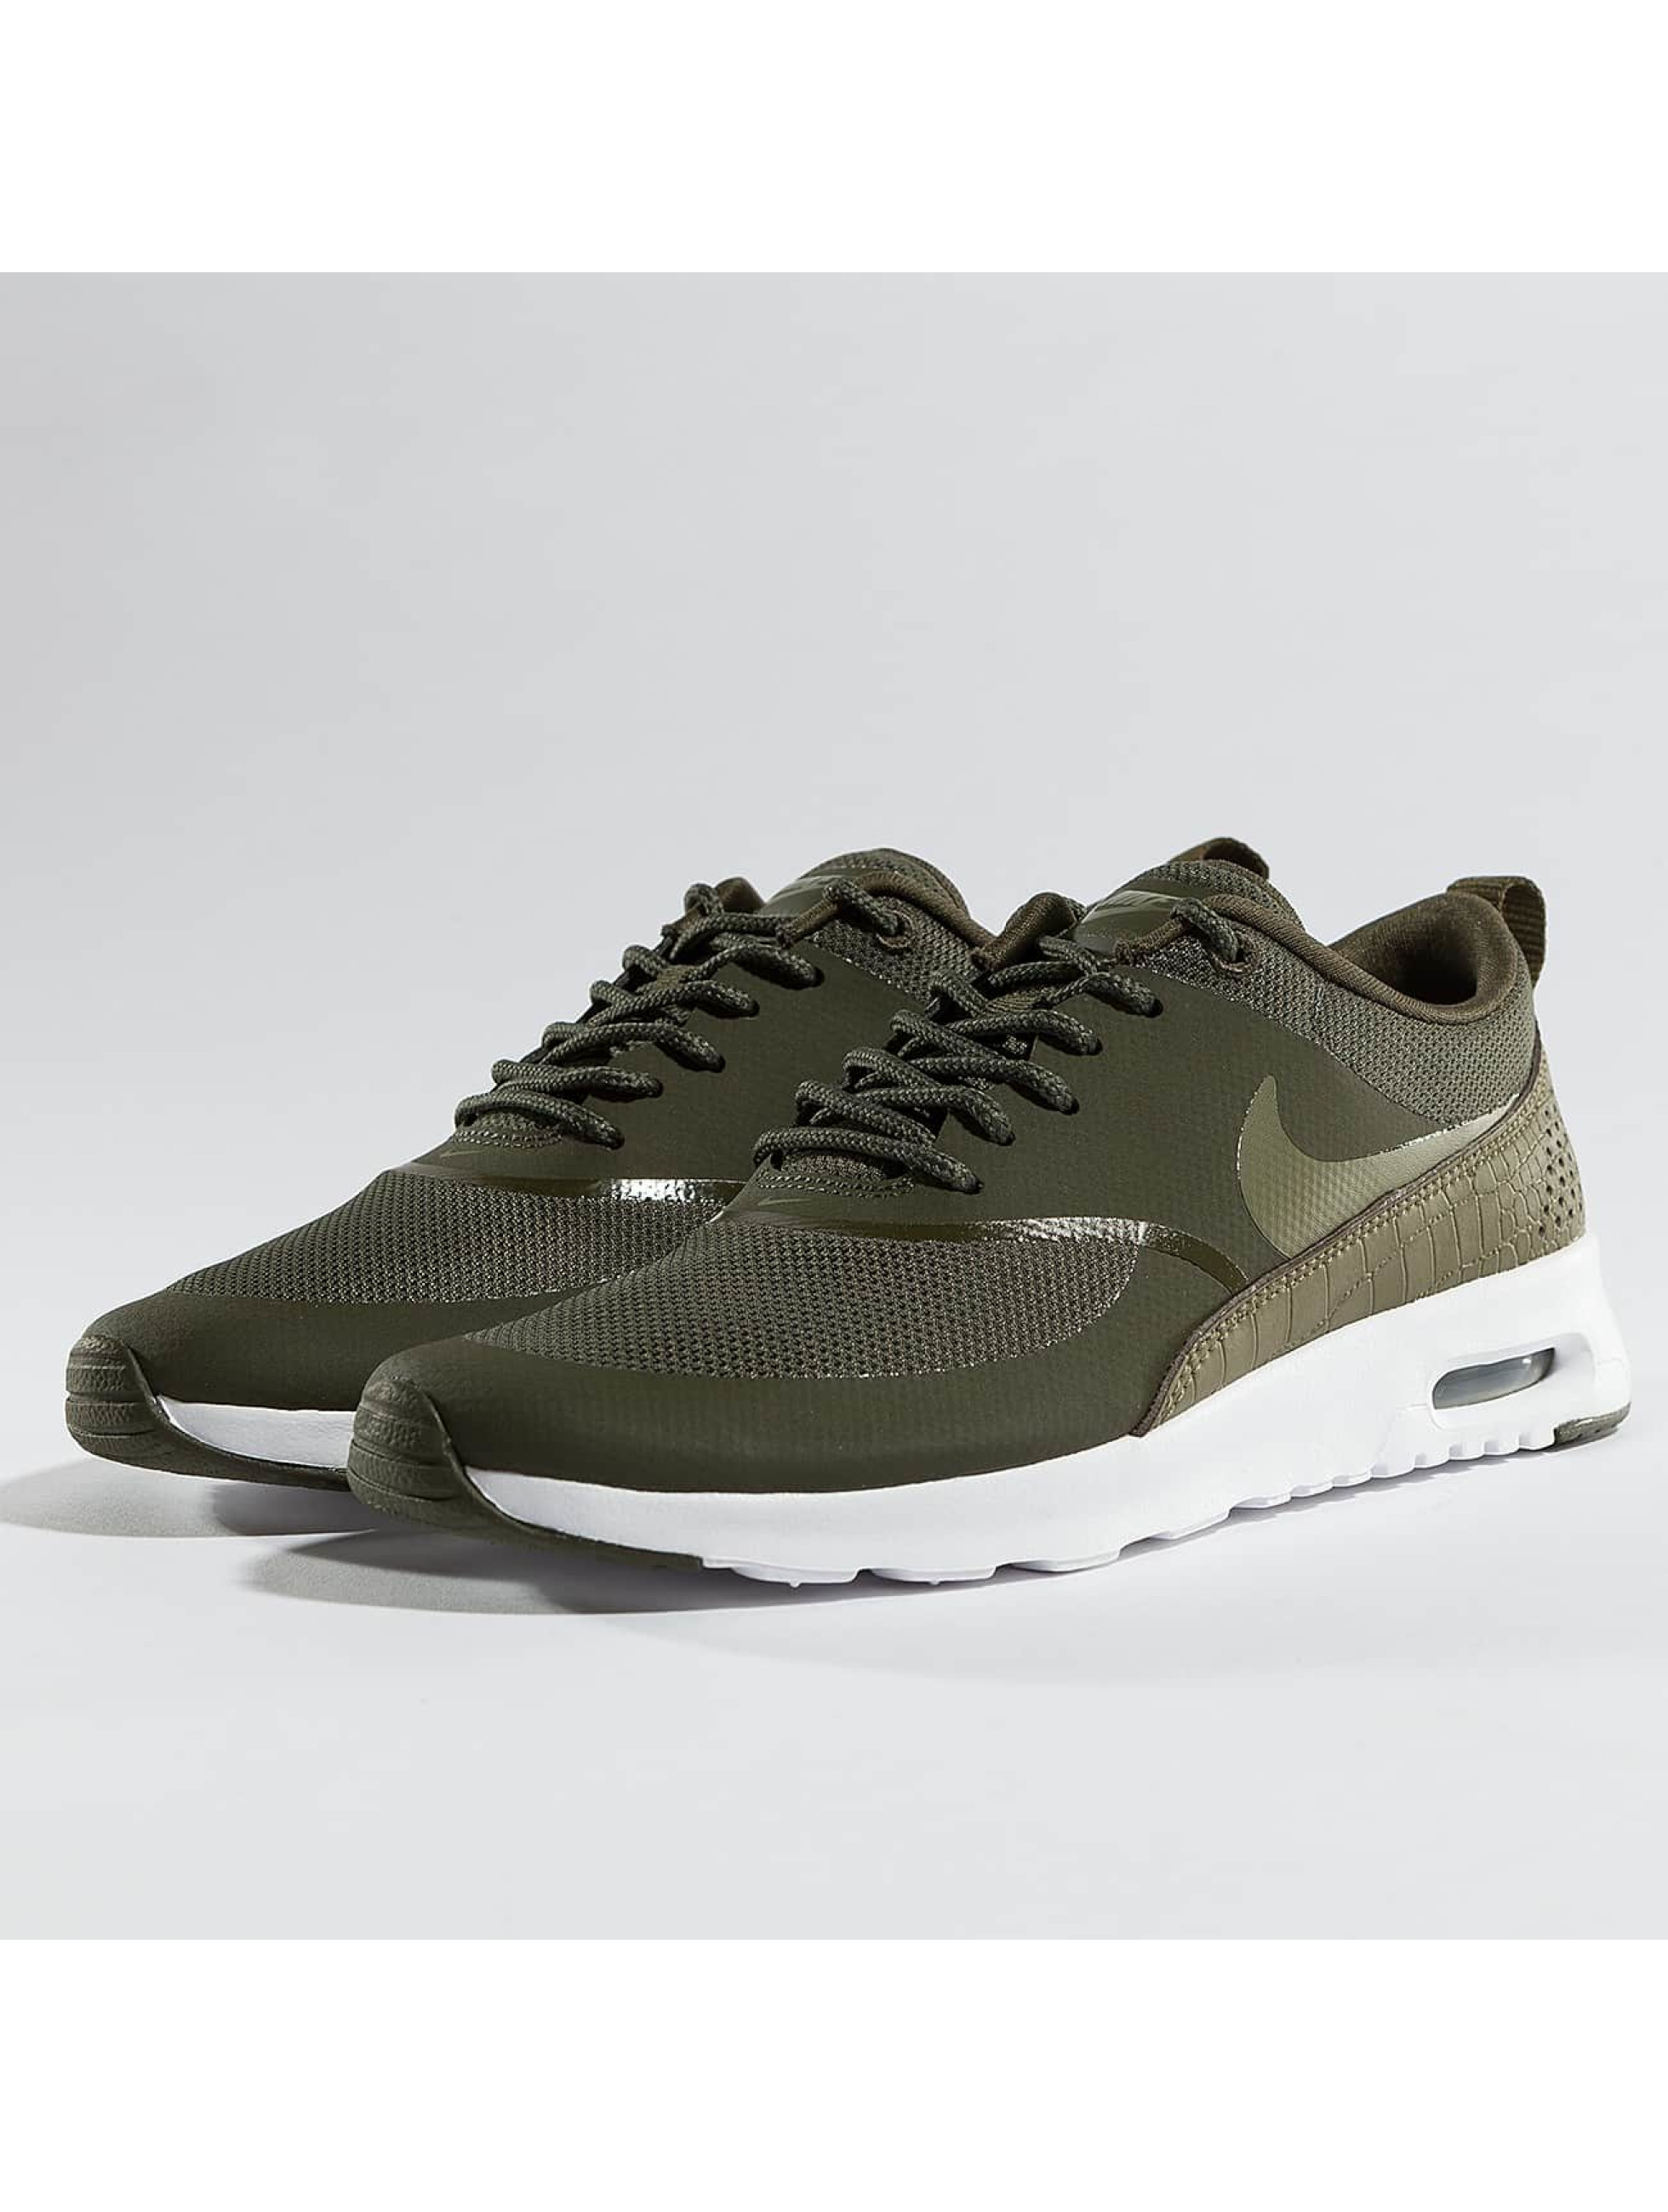 nike air max thea kaki femme baskets nike acheter pas cher chaussures 364897. Black Bedroom Furniture Sets. Home Design Ideas